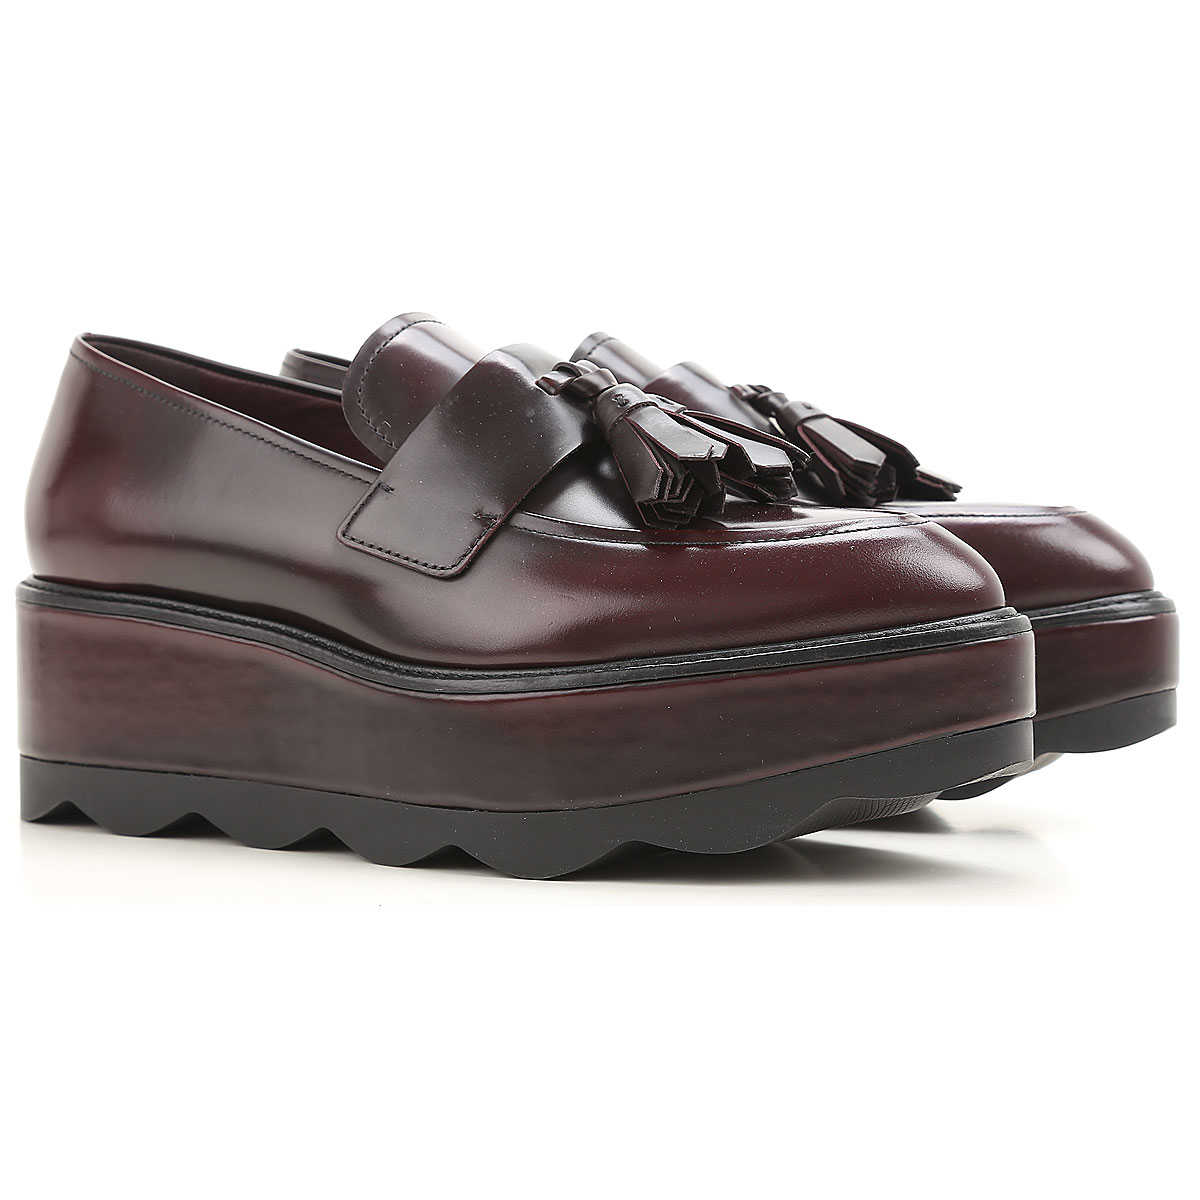 Prada Loafers for Women On Sale in Outlet